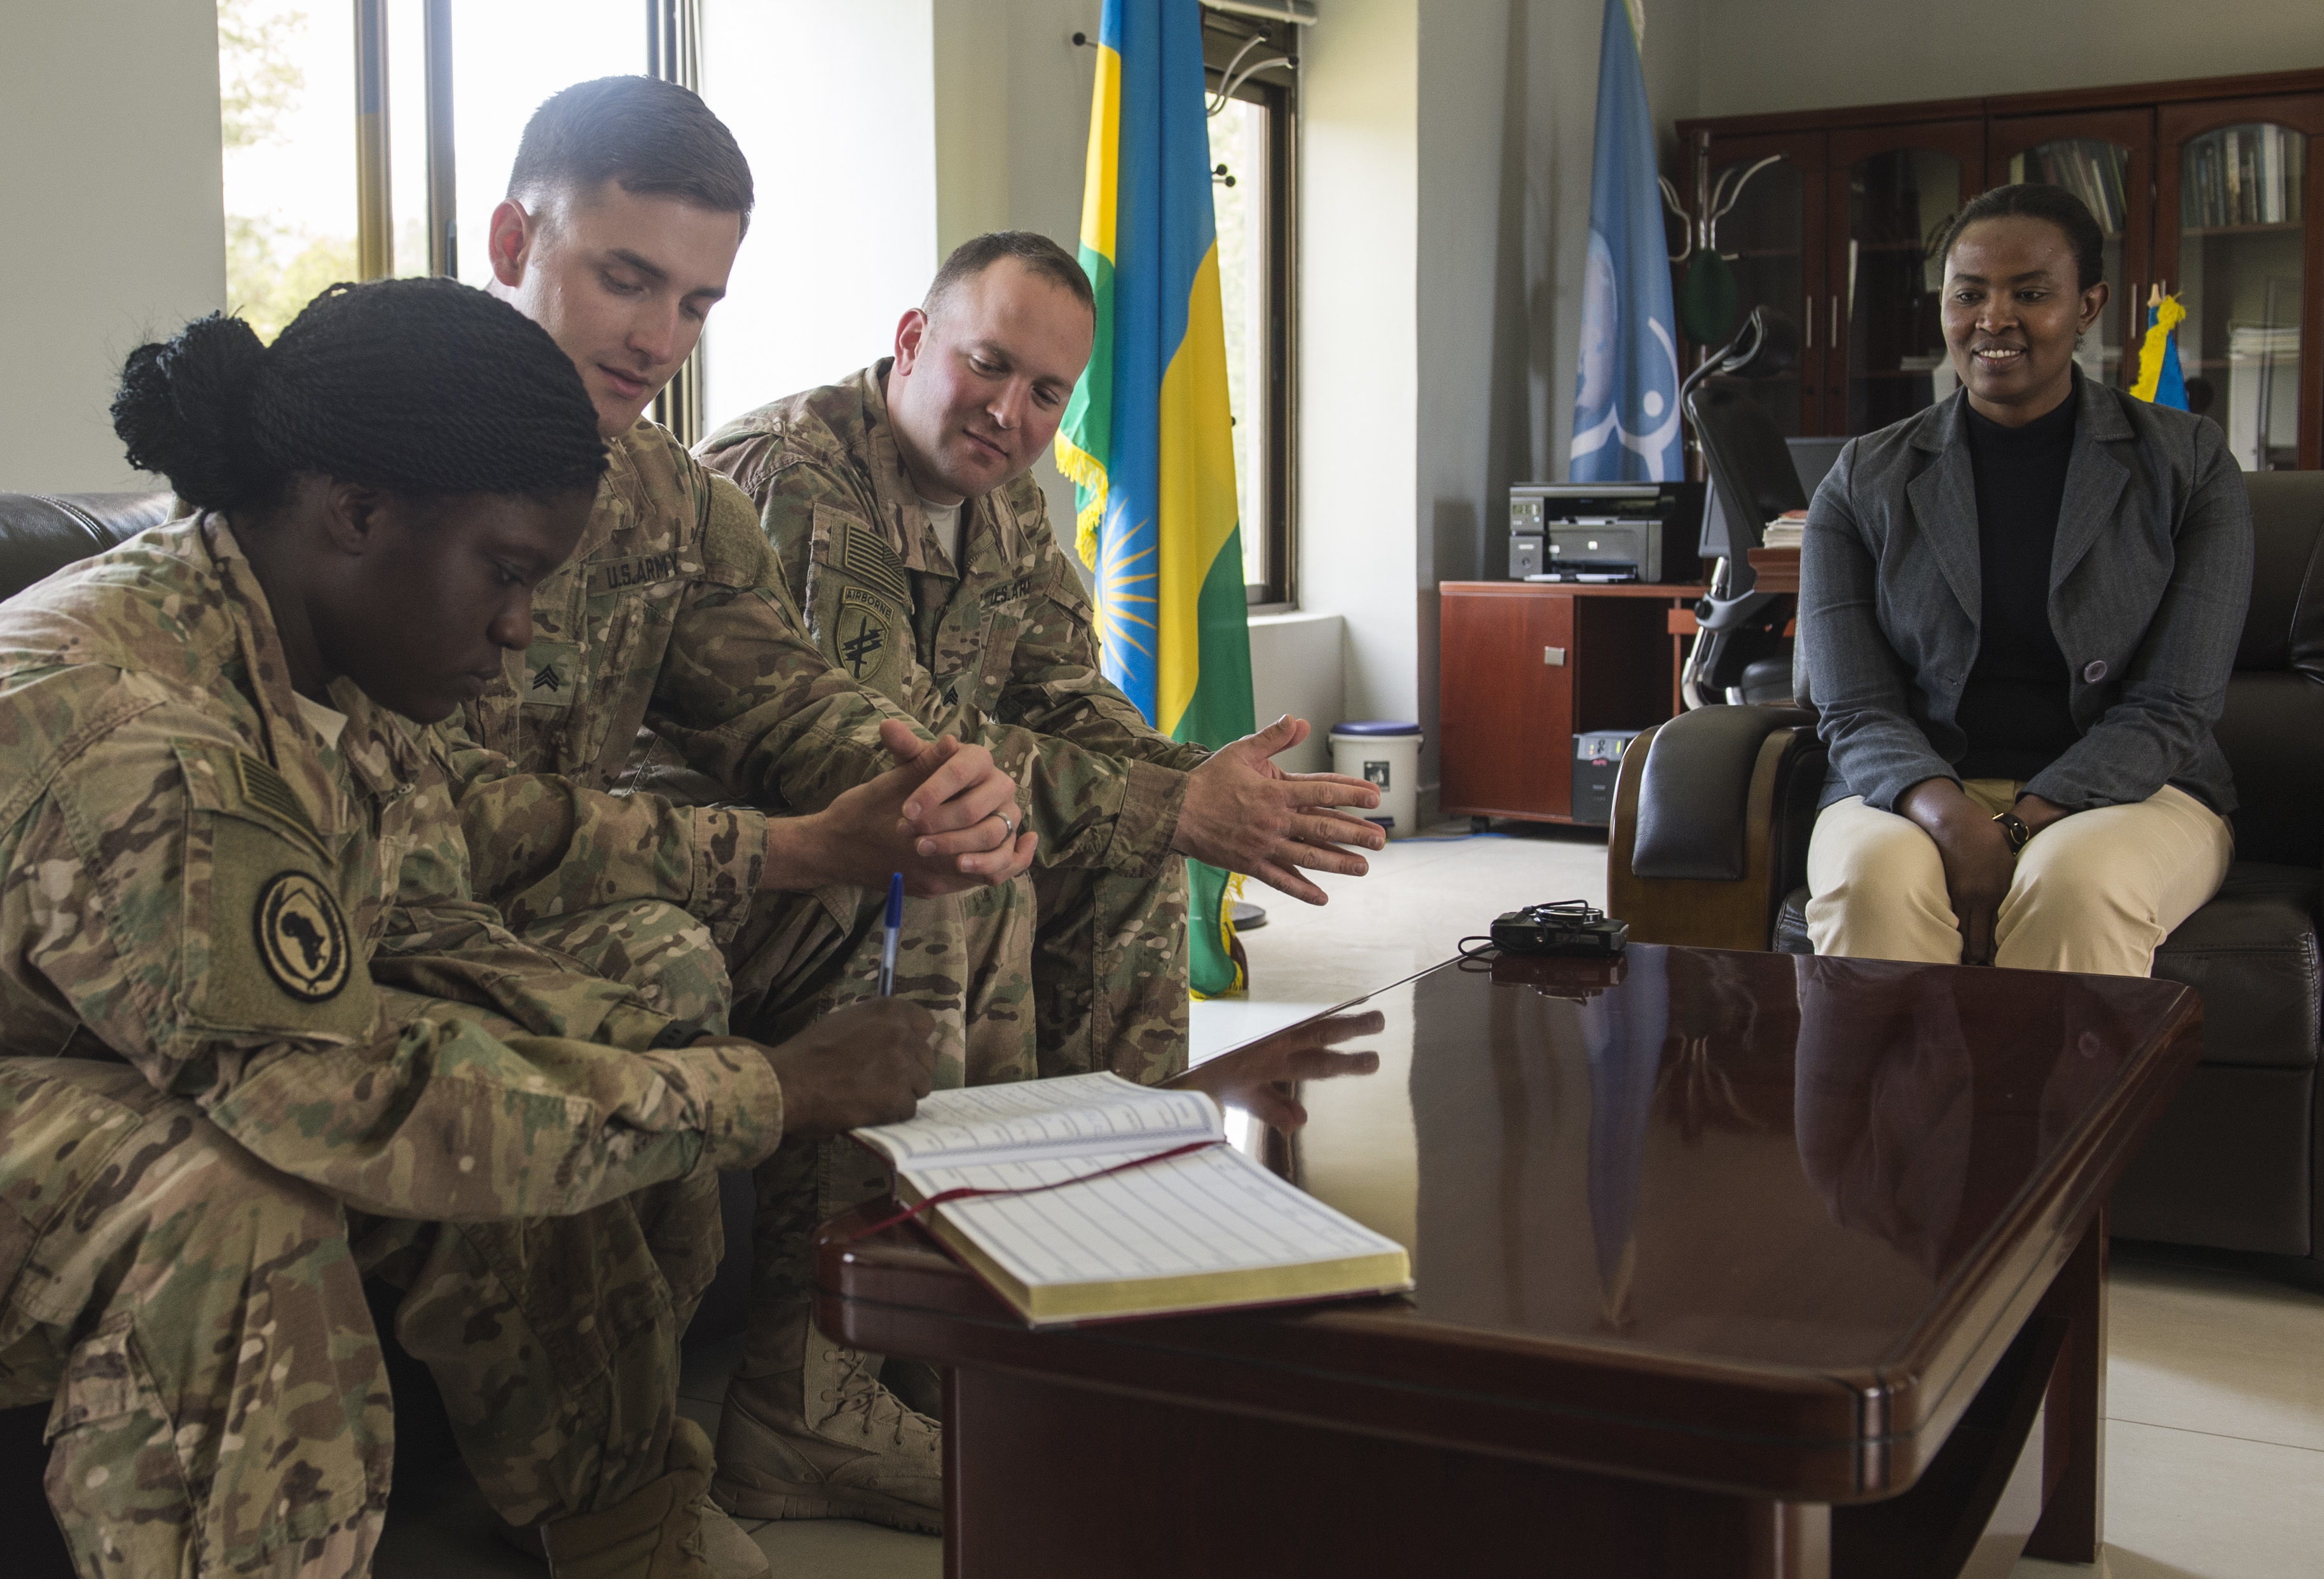 Representatives from the Combined Joint Task Force-Horn of Africa Army civil affairs battalion and information operations office sign a guest book at the Rwanda Peace Academy Feb. 4, 2016, in Musanze, Rwanda. Rwanda is one of the largest contributors of forces to peacekeeping operations in East Africa. The Ministry of Defence's impact continues to expand as the Rwanda Peace Academy takes on a larger role as an international training, research and education center. (U.S. Air Force photo by Senior Airman Peter Thompson)